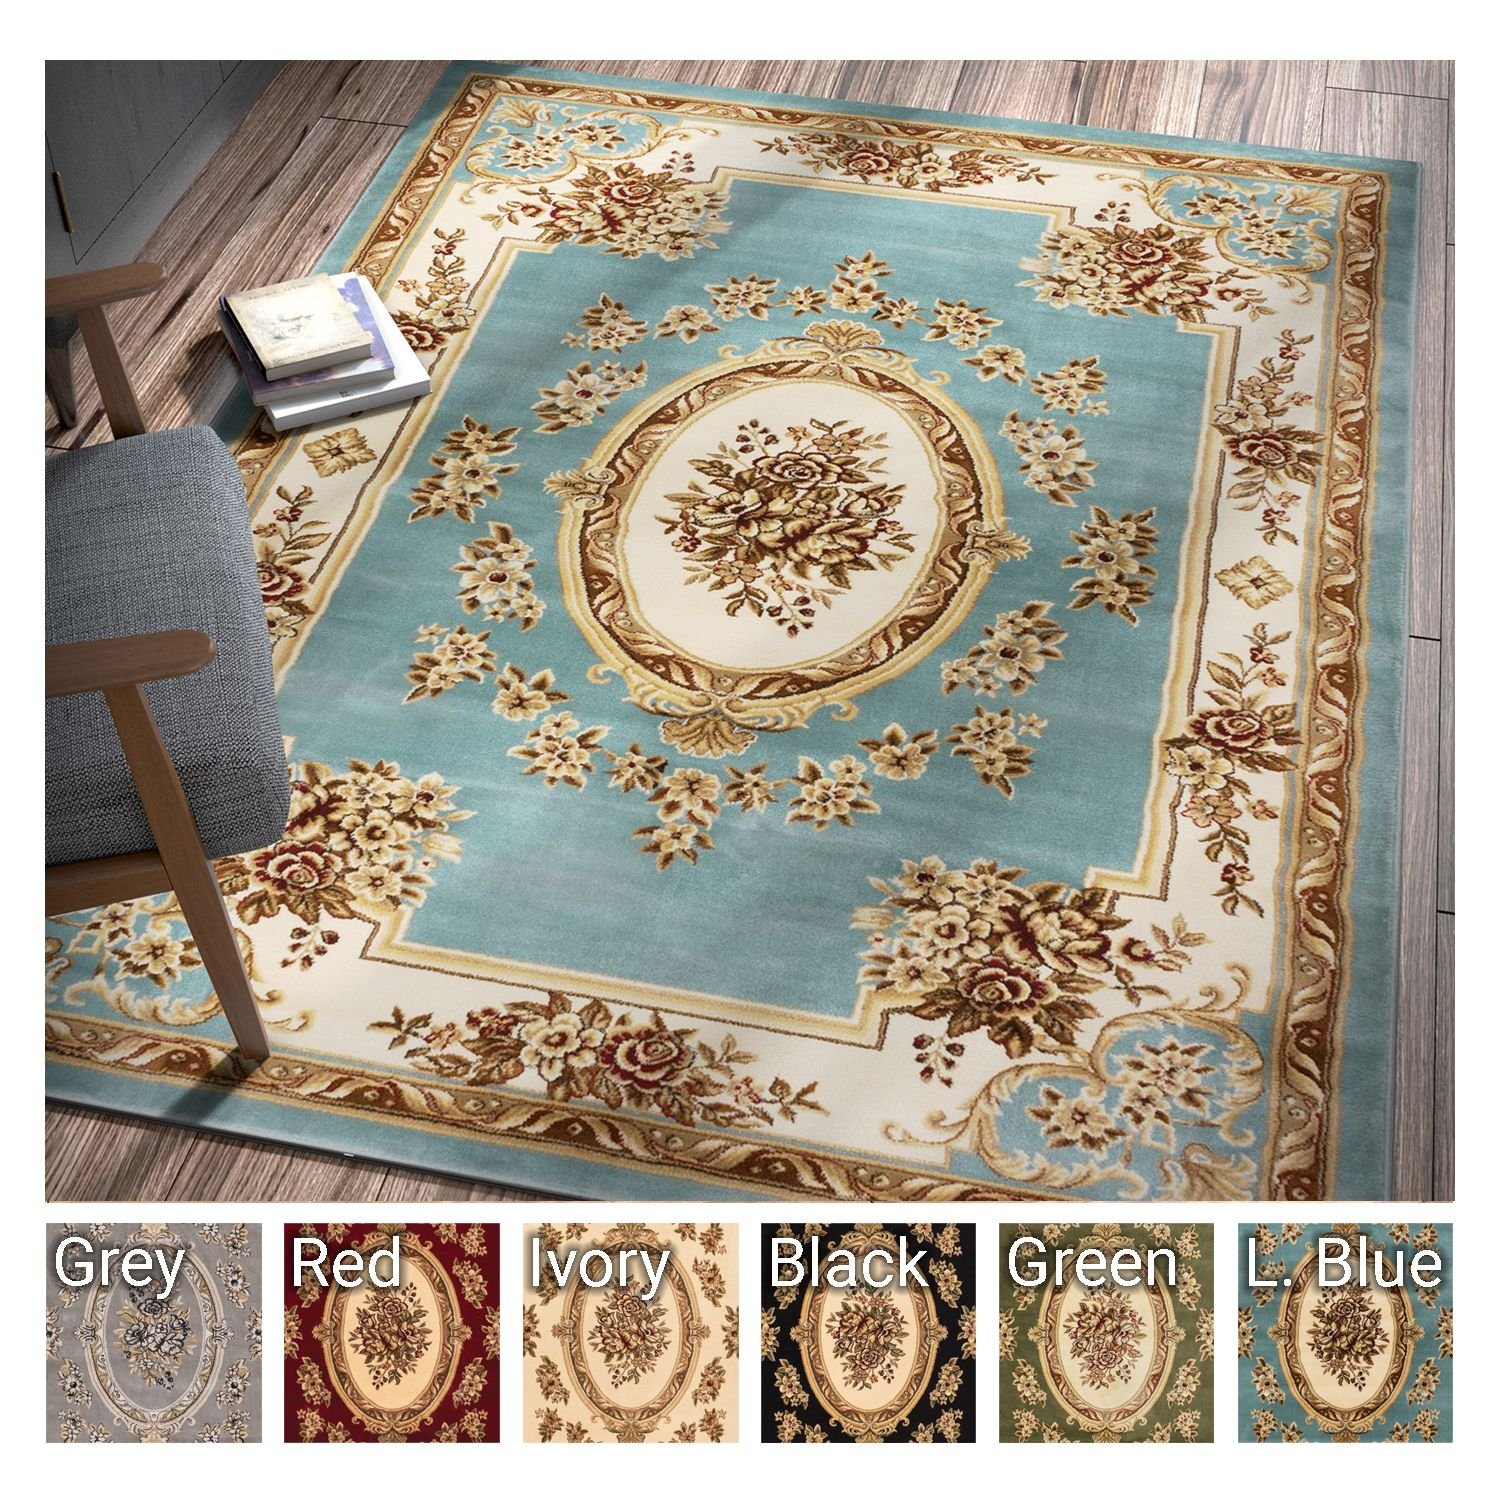 Pastoral Medallion Light Blue French European Formal Traditional 5x7 (5'3'' x 7'3'') Area Rug Easy to Clean Stain / Fade Resistant Modern Contemporary Floral Thick Soft Plush Living Dining Room Rug by Well Woven